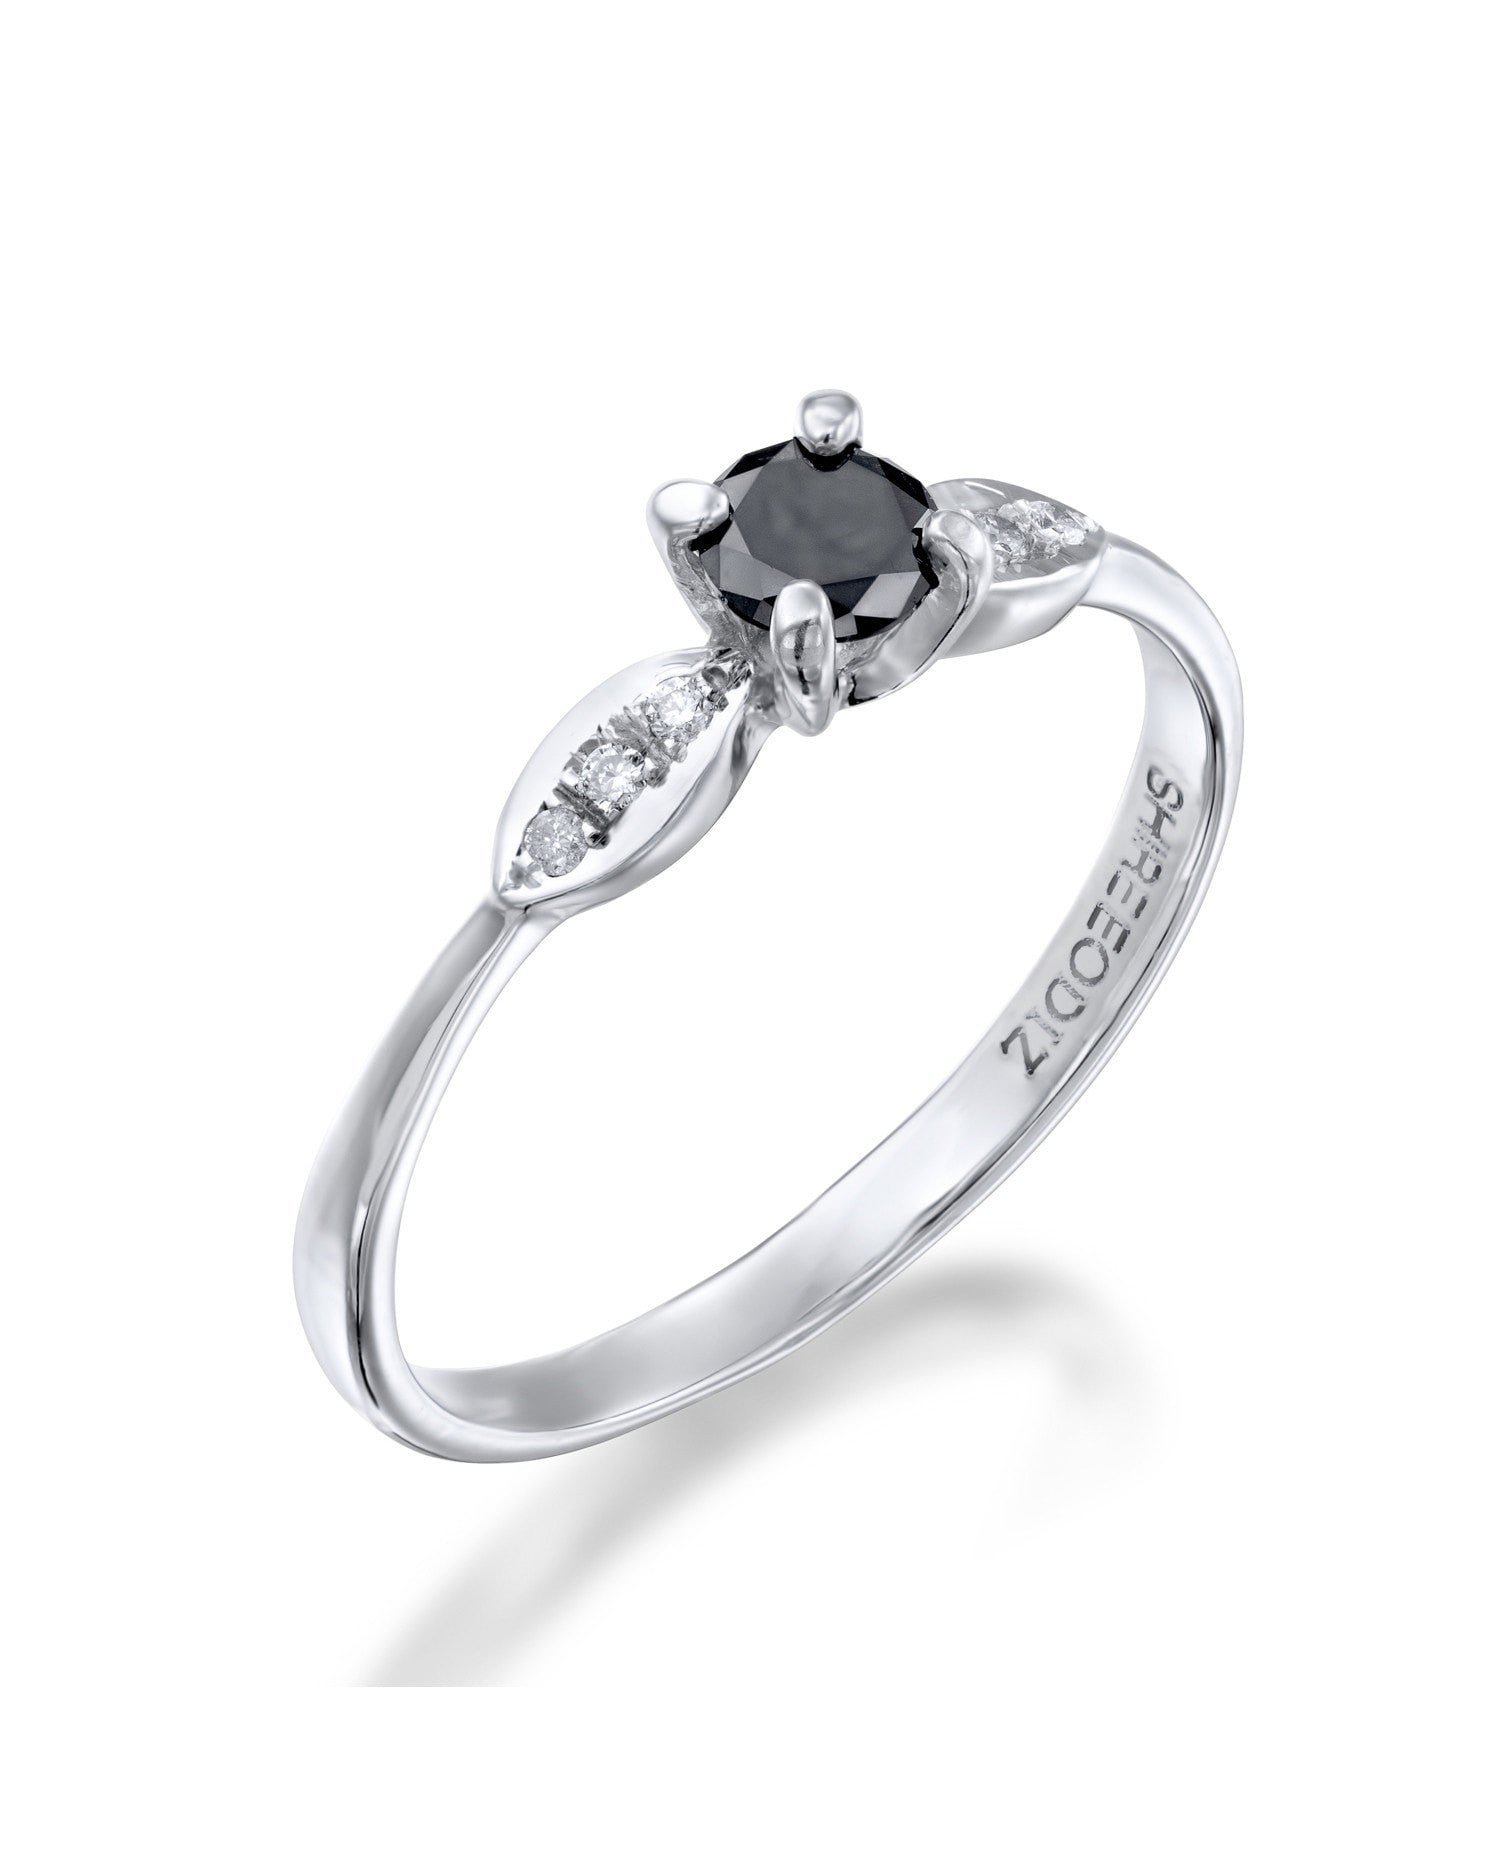 view pointer rings cathedral engagement perspective classic for women products ring setting solitaire pt prong platinum jl dsc